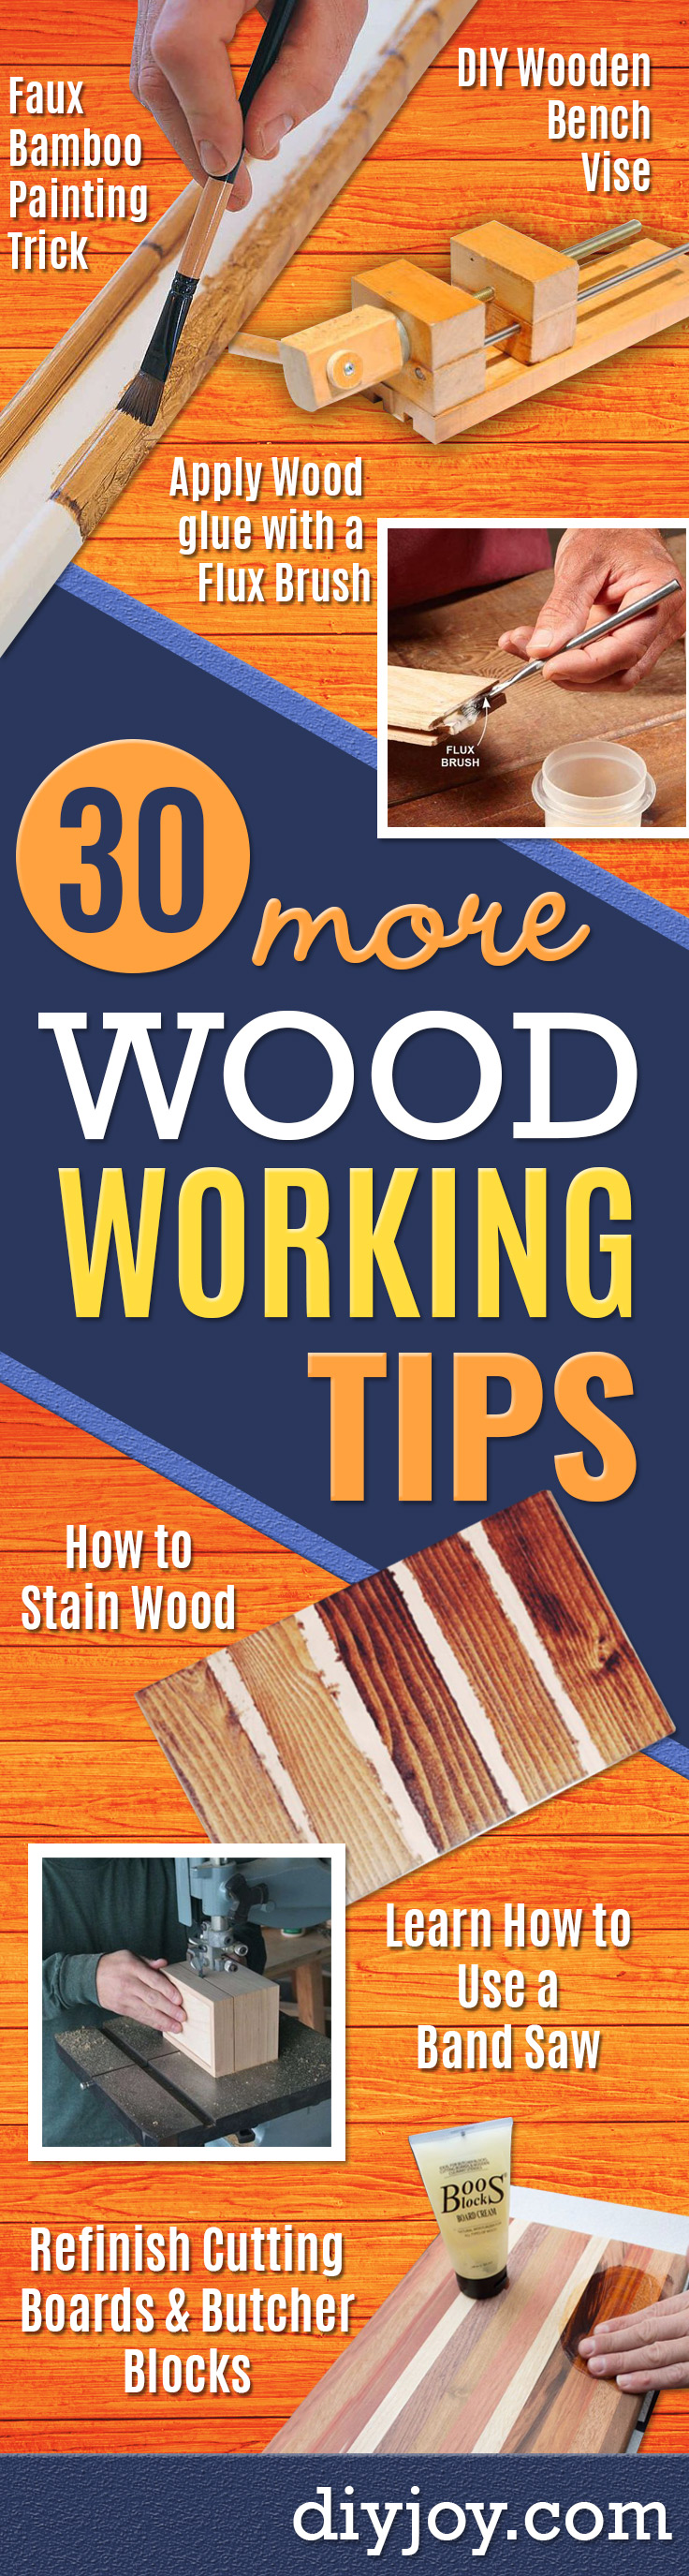 Cool Woodworking Tips - Easy Woodworking Ideas, Woodworking Tips and Tricks, Woodworking Tips For Beginners, Basic Guide For Woodworking - Refinishing Wood, Sanding and Staining, Cleaning Wood and Upcycling Pallets - Tips for Wooden Craft Projects